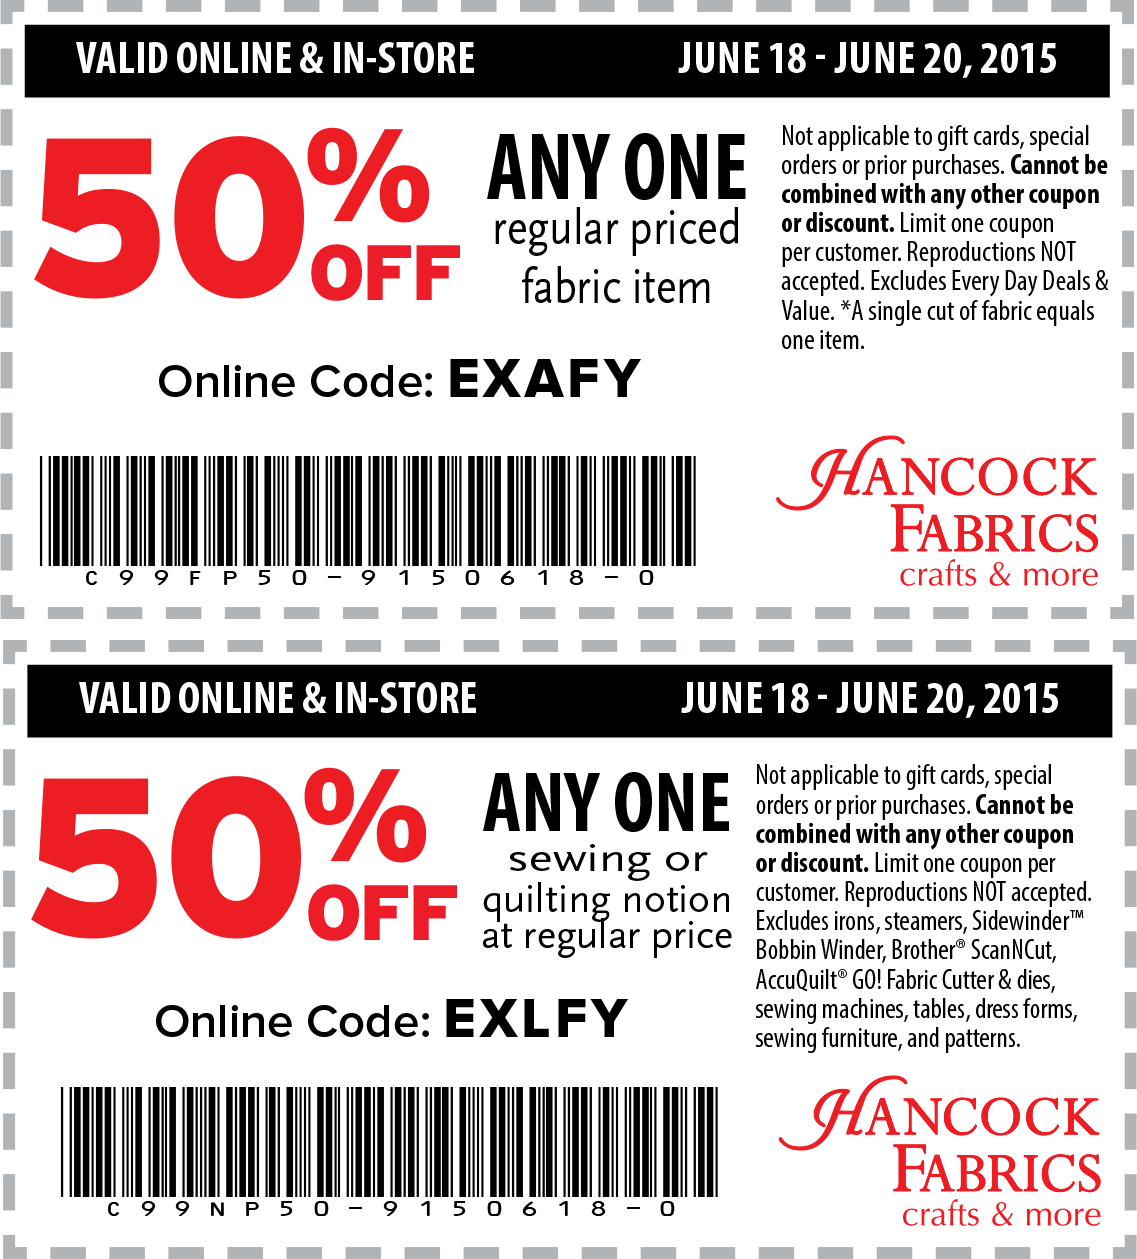 Hancock Fabrics Coupon May 2017 50% off a single item at Hancock Fabrics, or online via promo code EXAFY